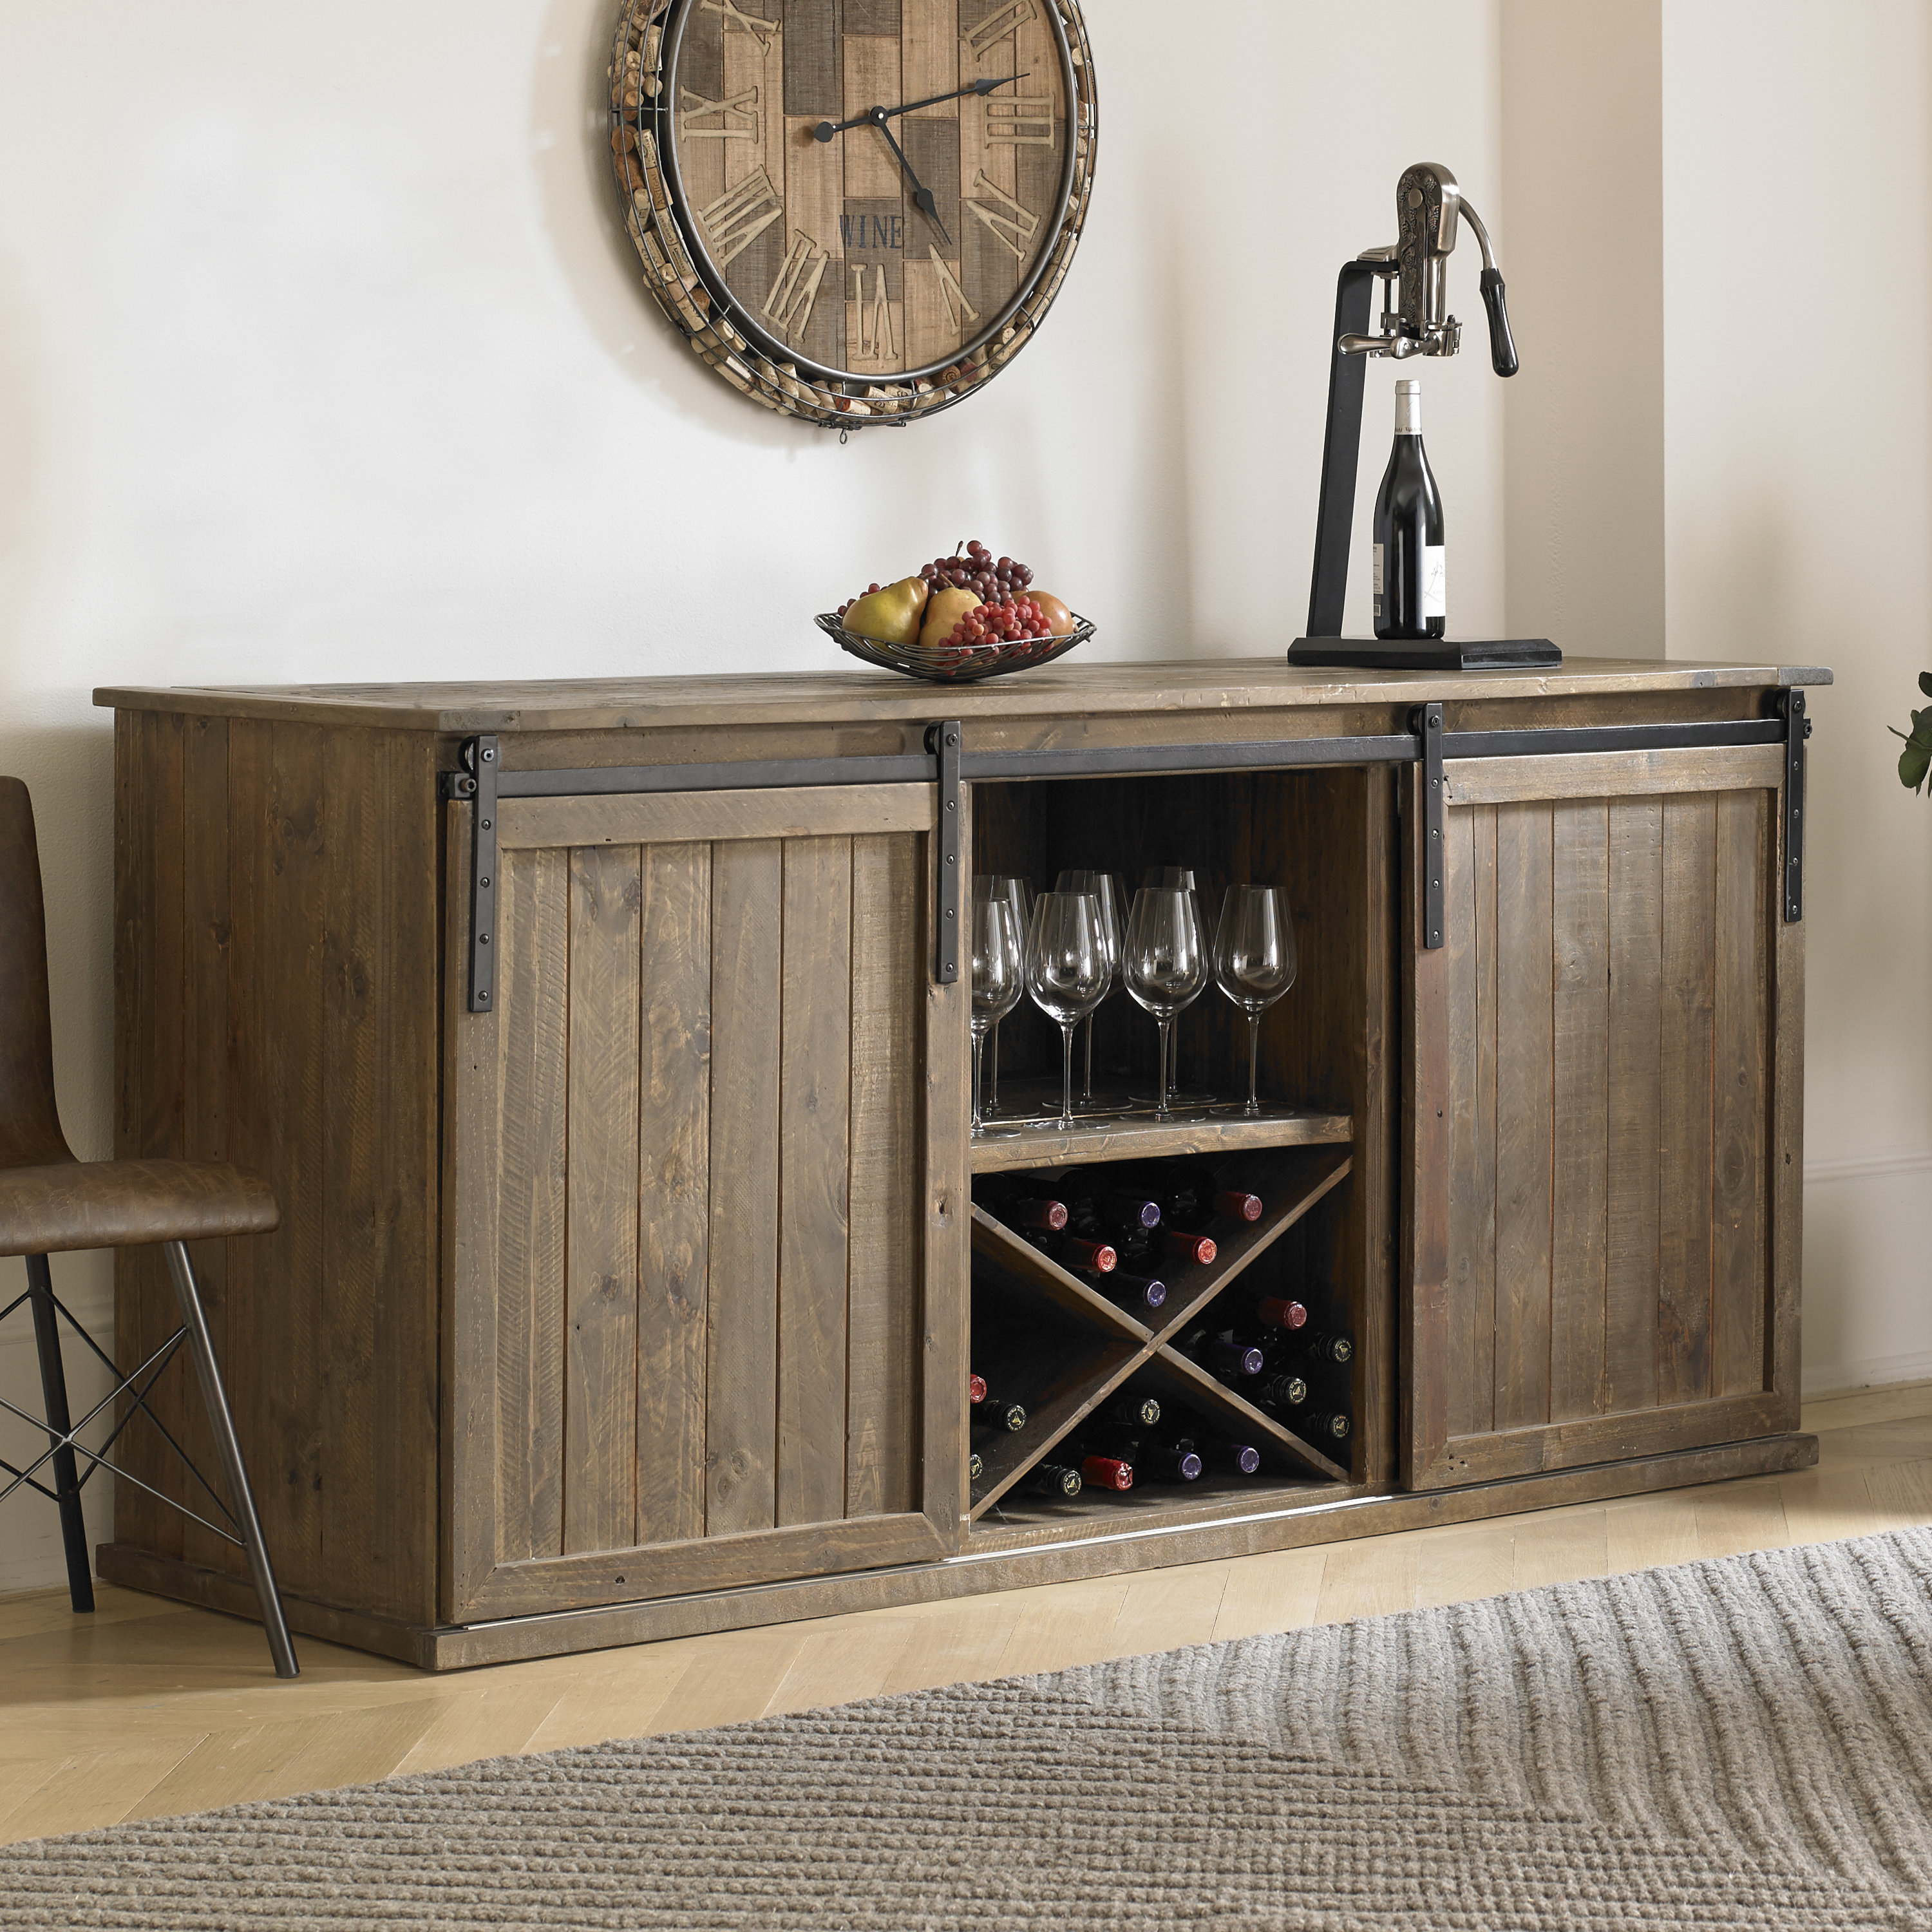 Small Credenza With Doors | Wayfair Within Latest Candace Door Credenzas (View 4 of 20)